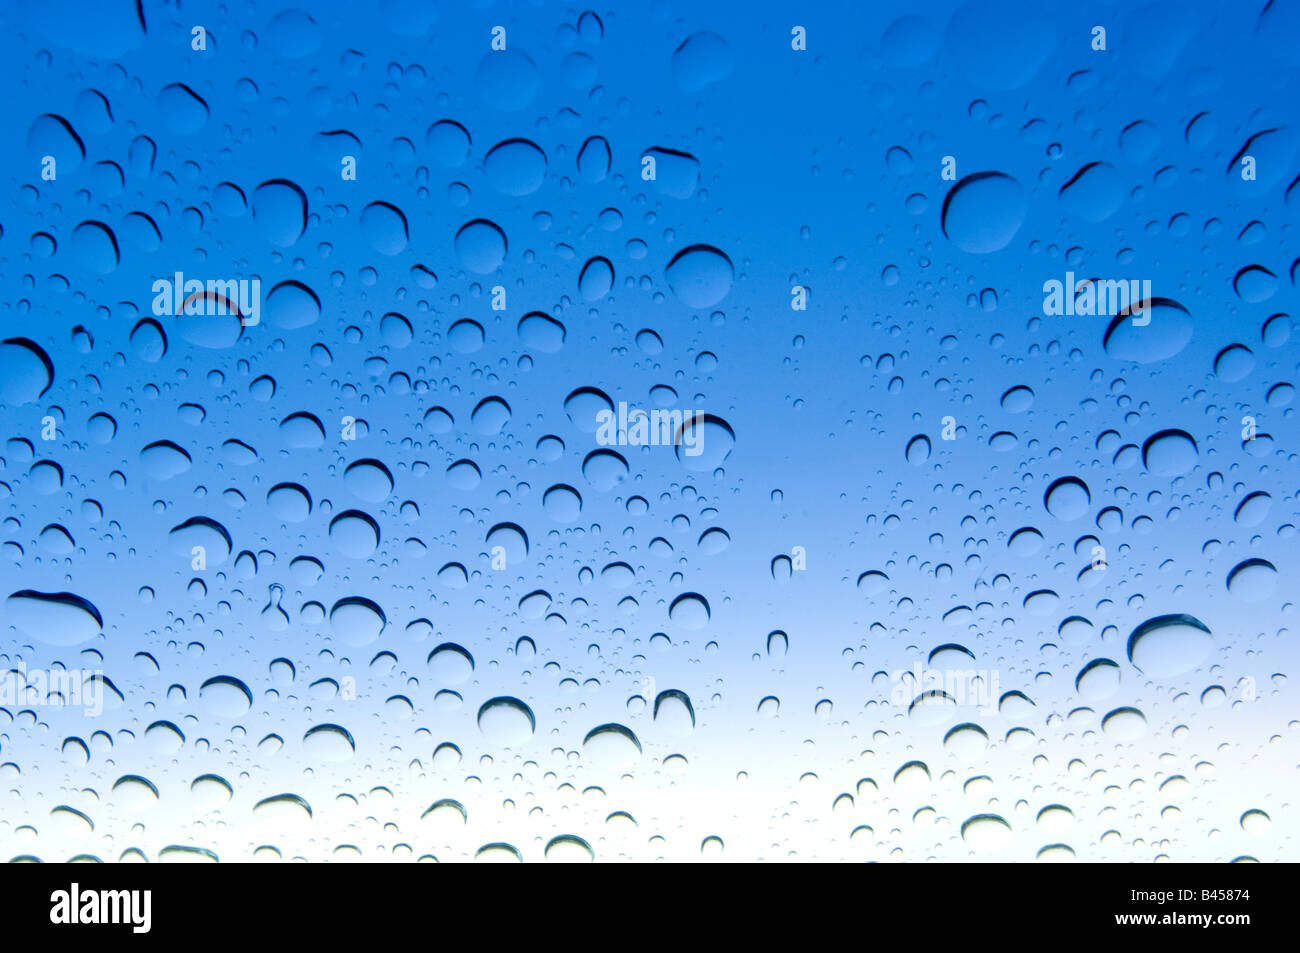 Rain droplets on blue tinted automobile windshield. - Stock Image